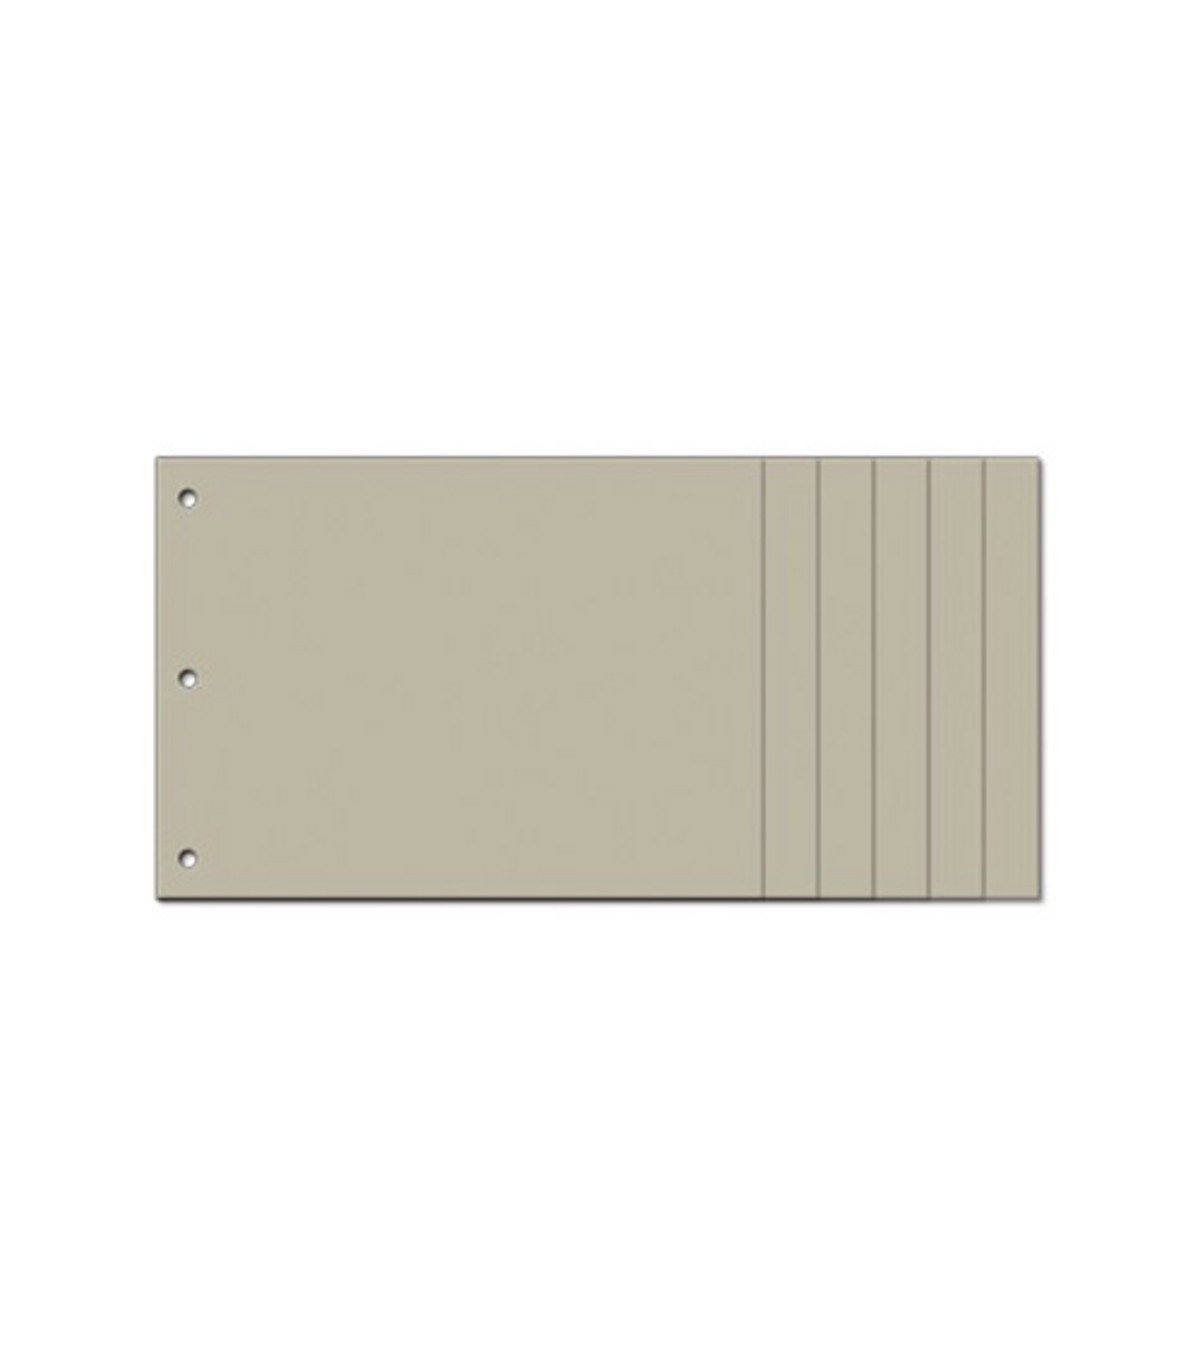 Bo Bunny 6 x 12-inch My Edgy Chipboard Album, Naked 395468